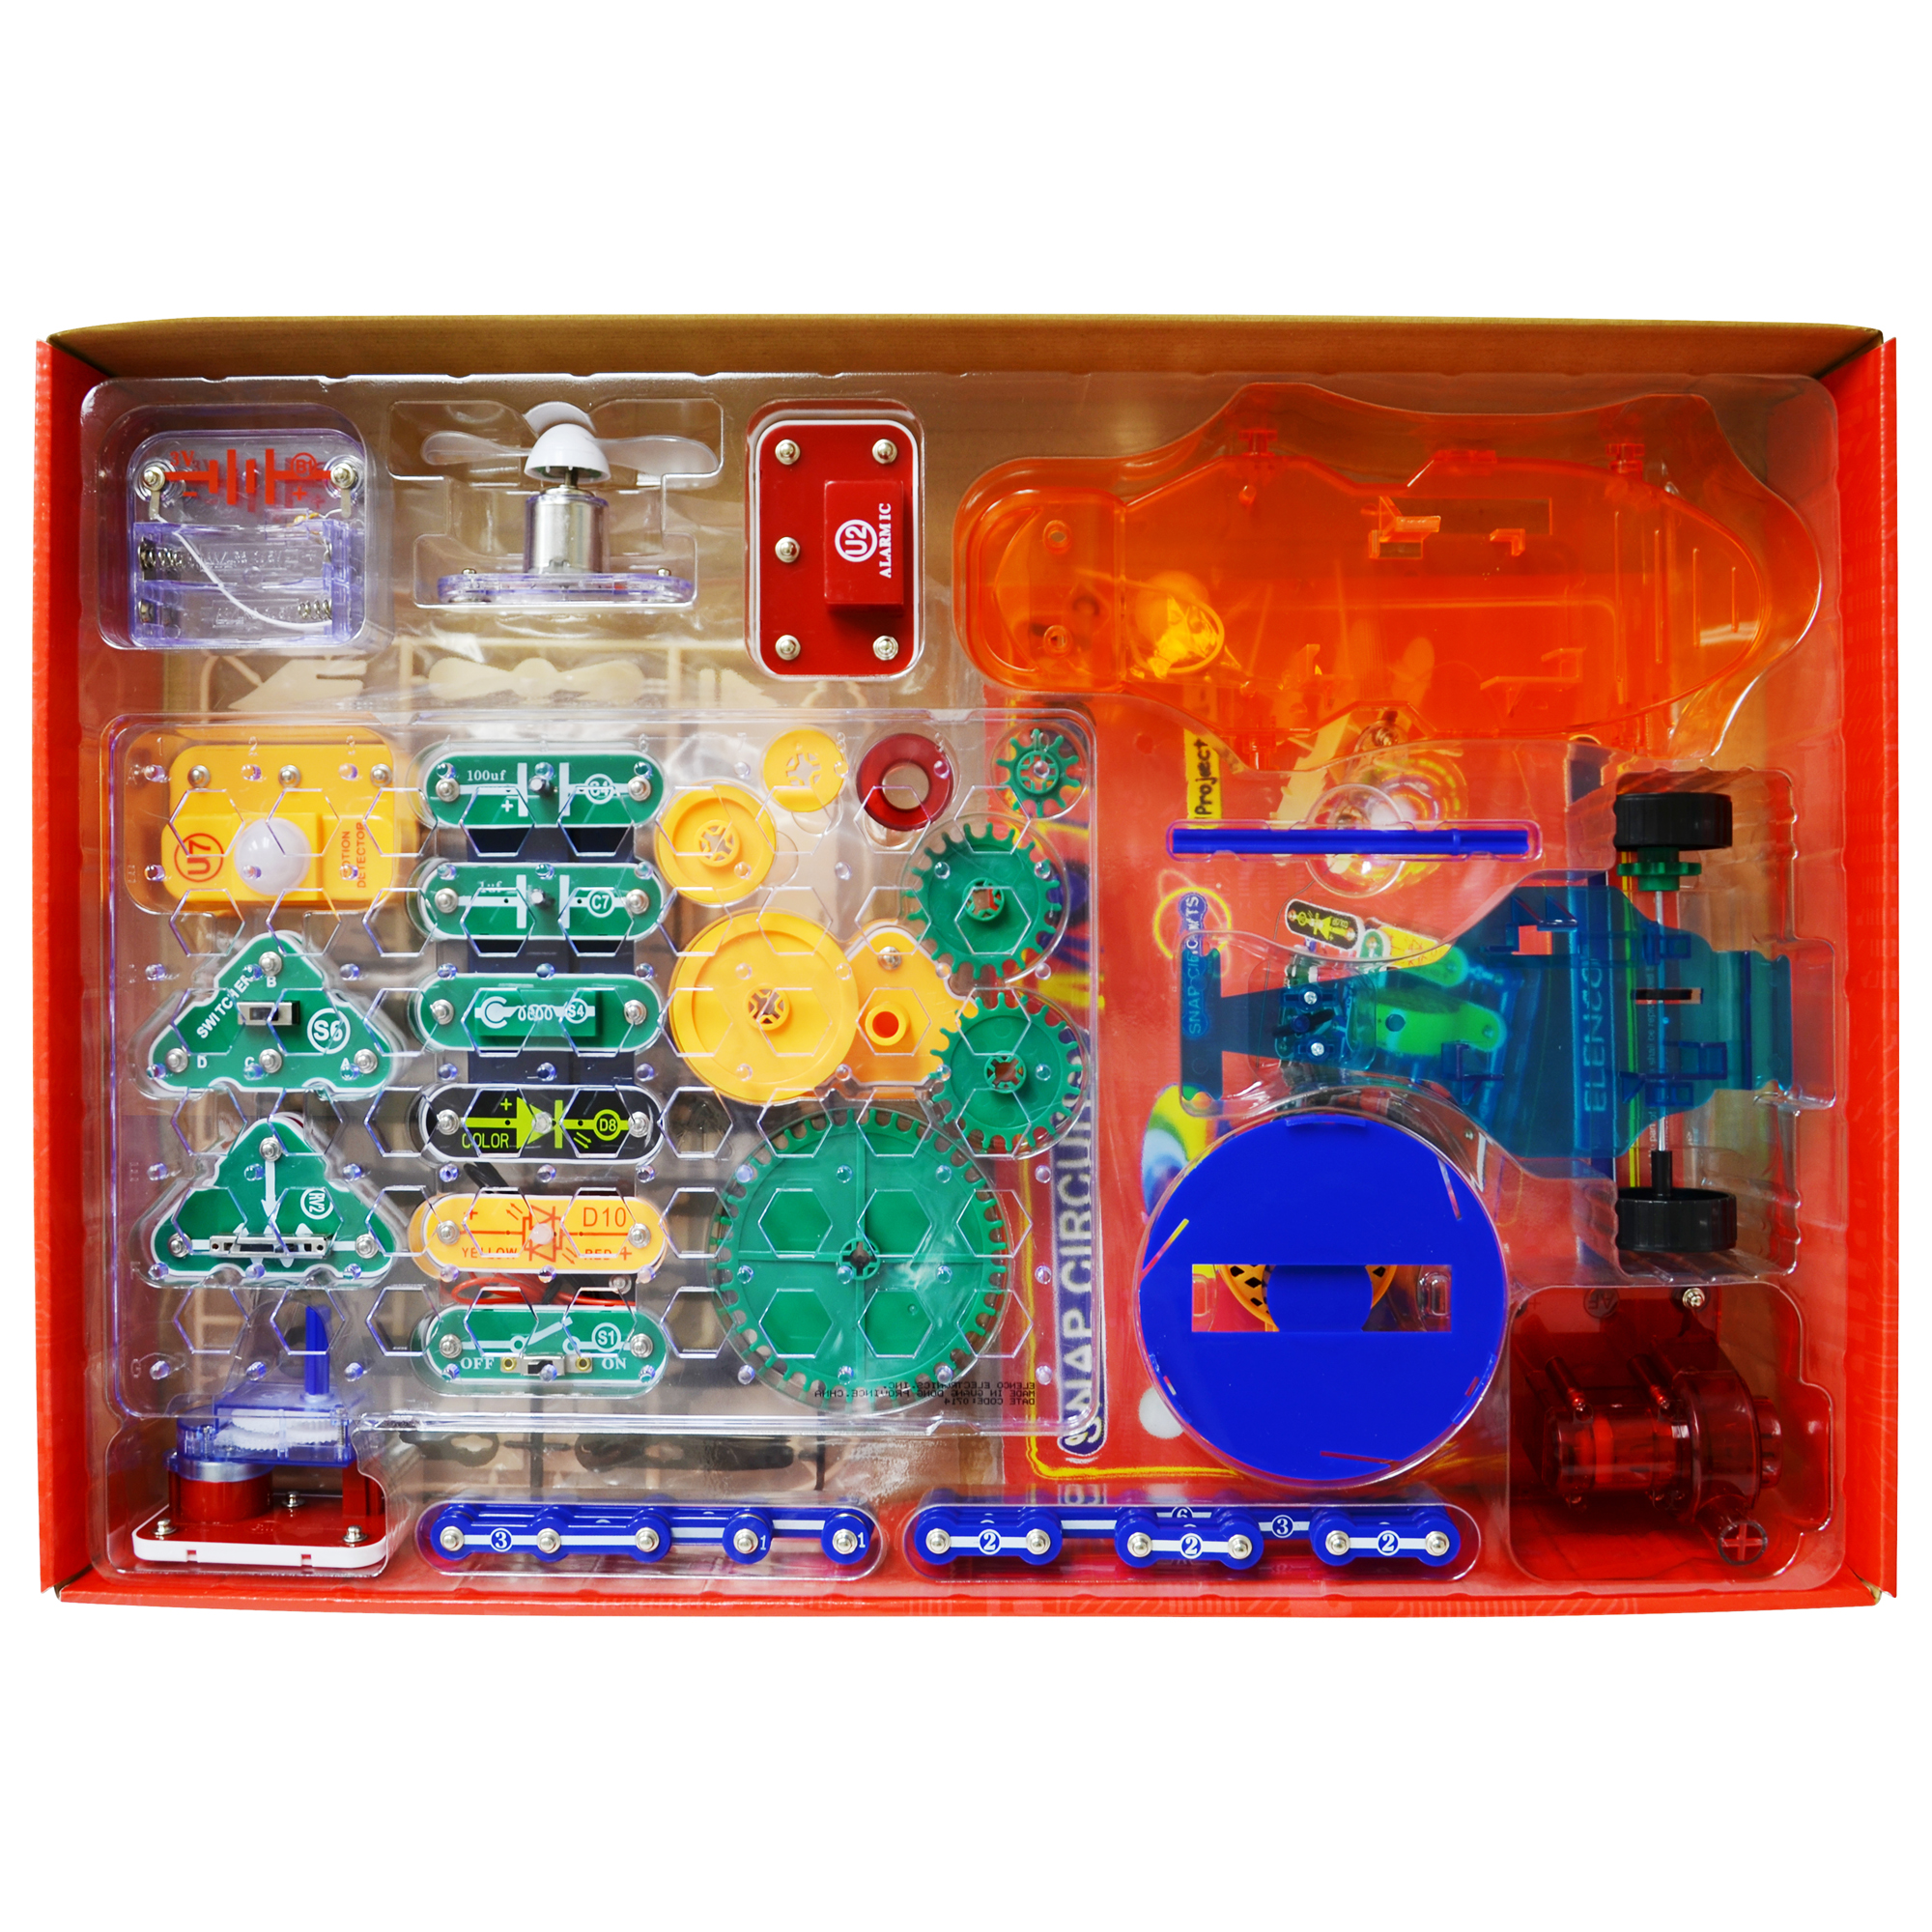 Snap Circuits Motion Elenco Electronics Electrical Project Kid Educational Previous Next